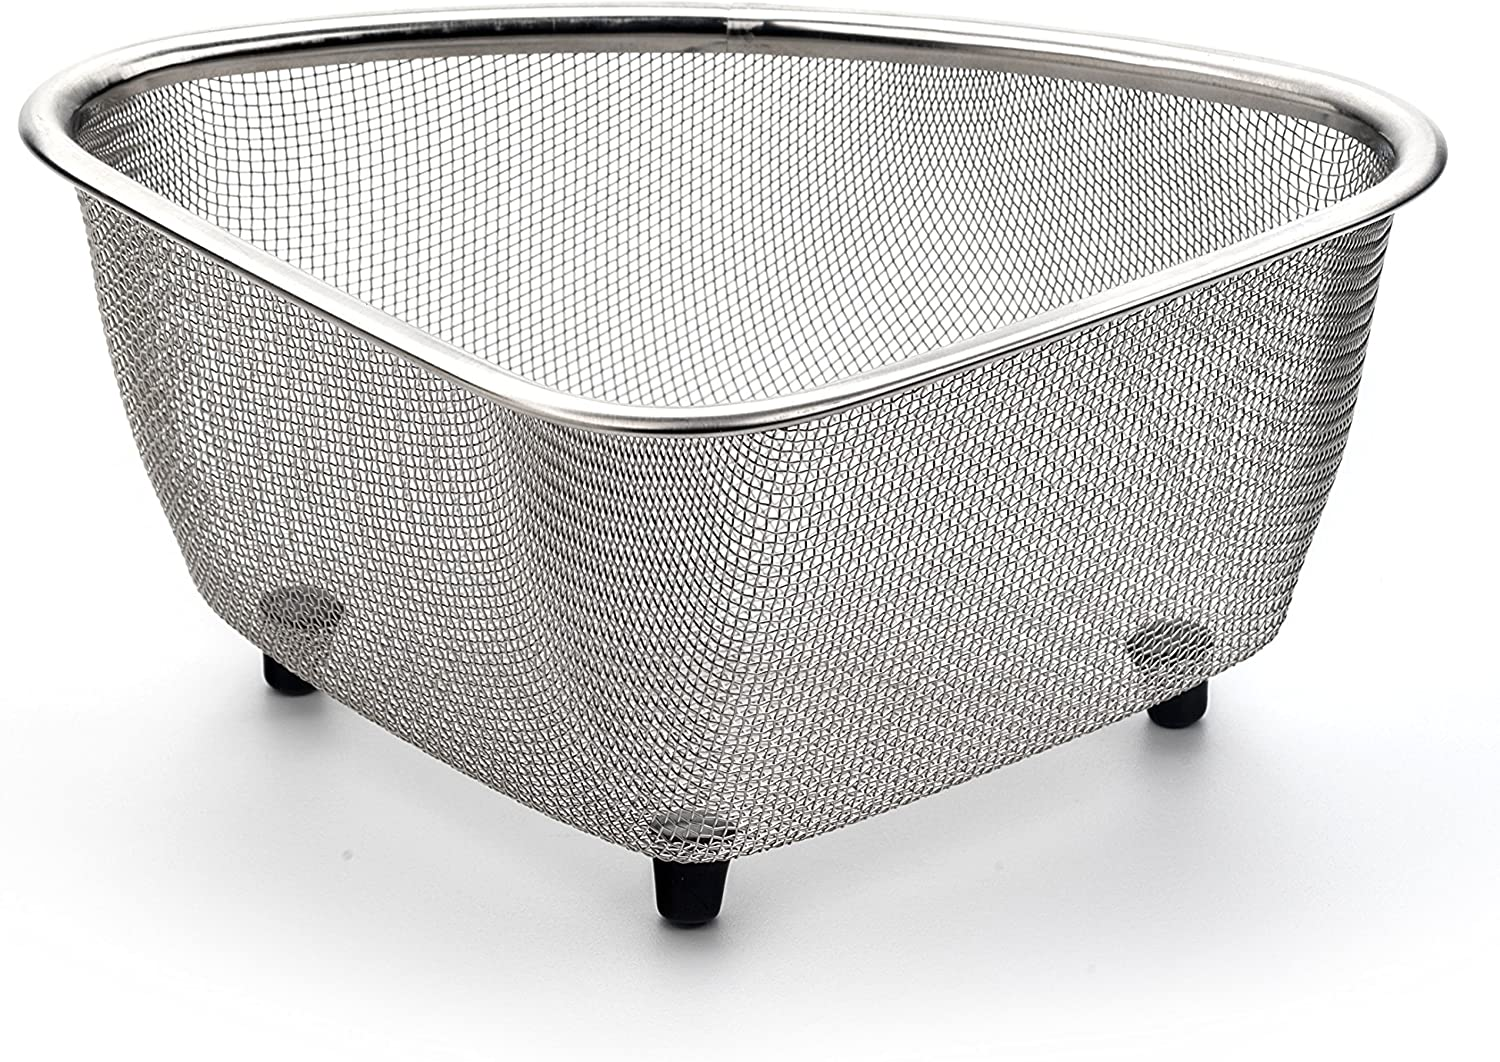 RSVP International Endurance (COR-M) In-Sink Mesh Colander Strainer Basket, 3 Quart | Organize Sponges, Collect Food Scraps | Dishwasher Safe | Small Corner Basket | Steaming, Draining & Rinsing